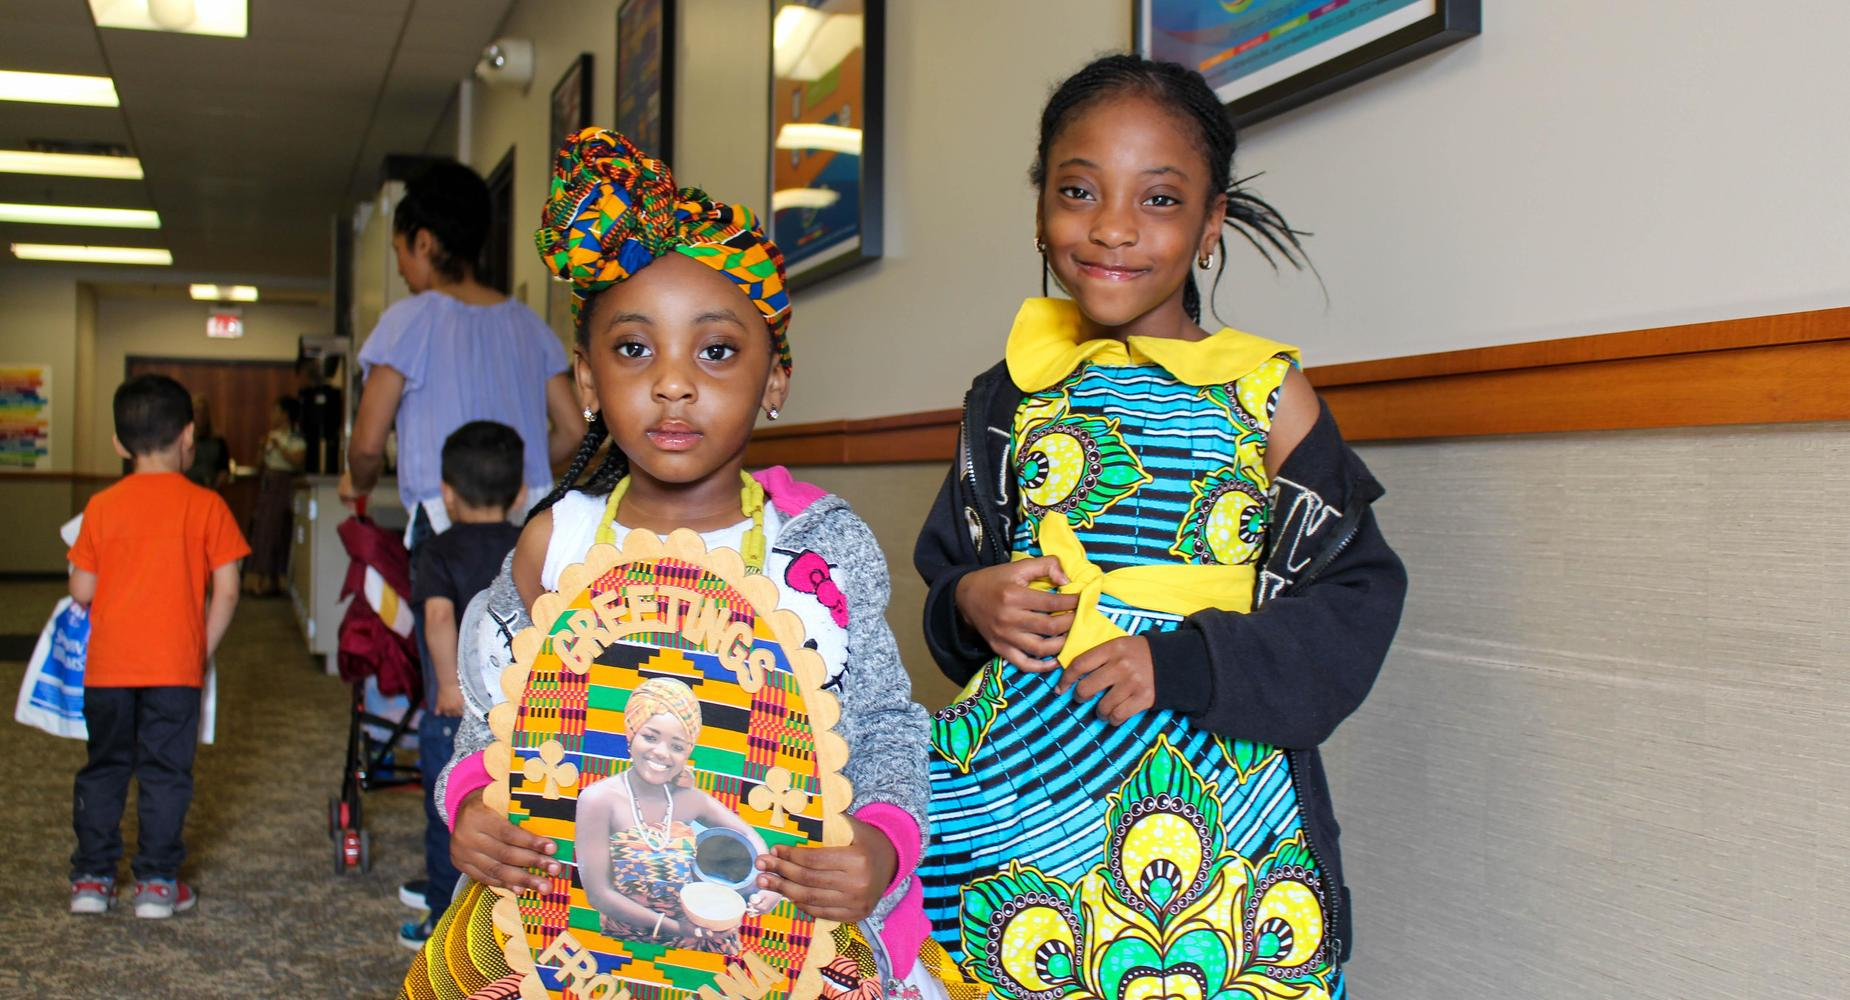 Sisters celebrating their heritage at the Friends Around the World multicultural event